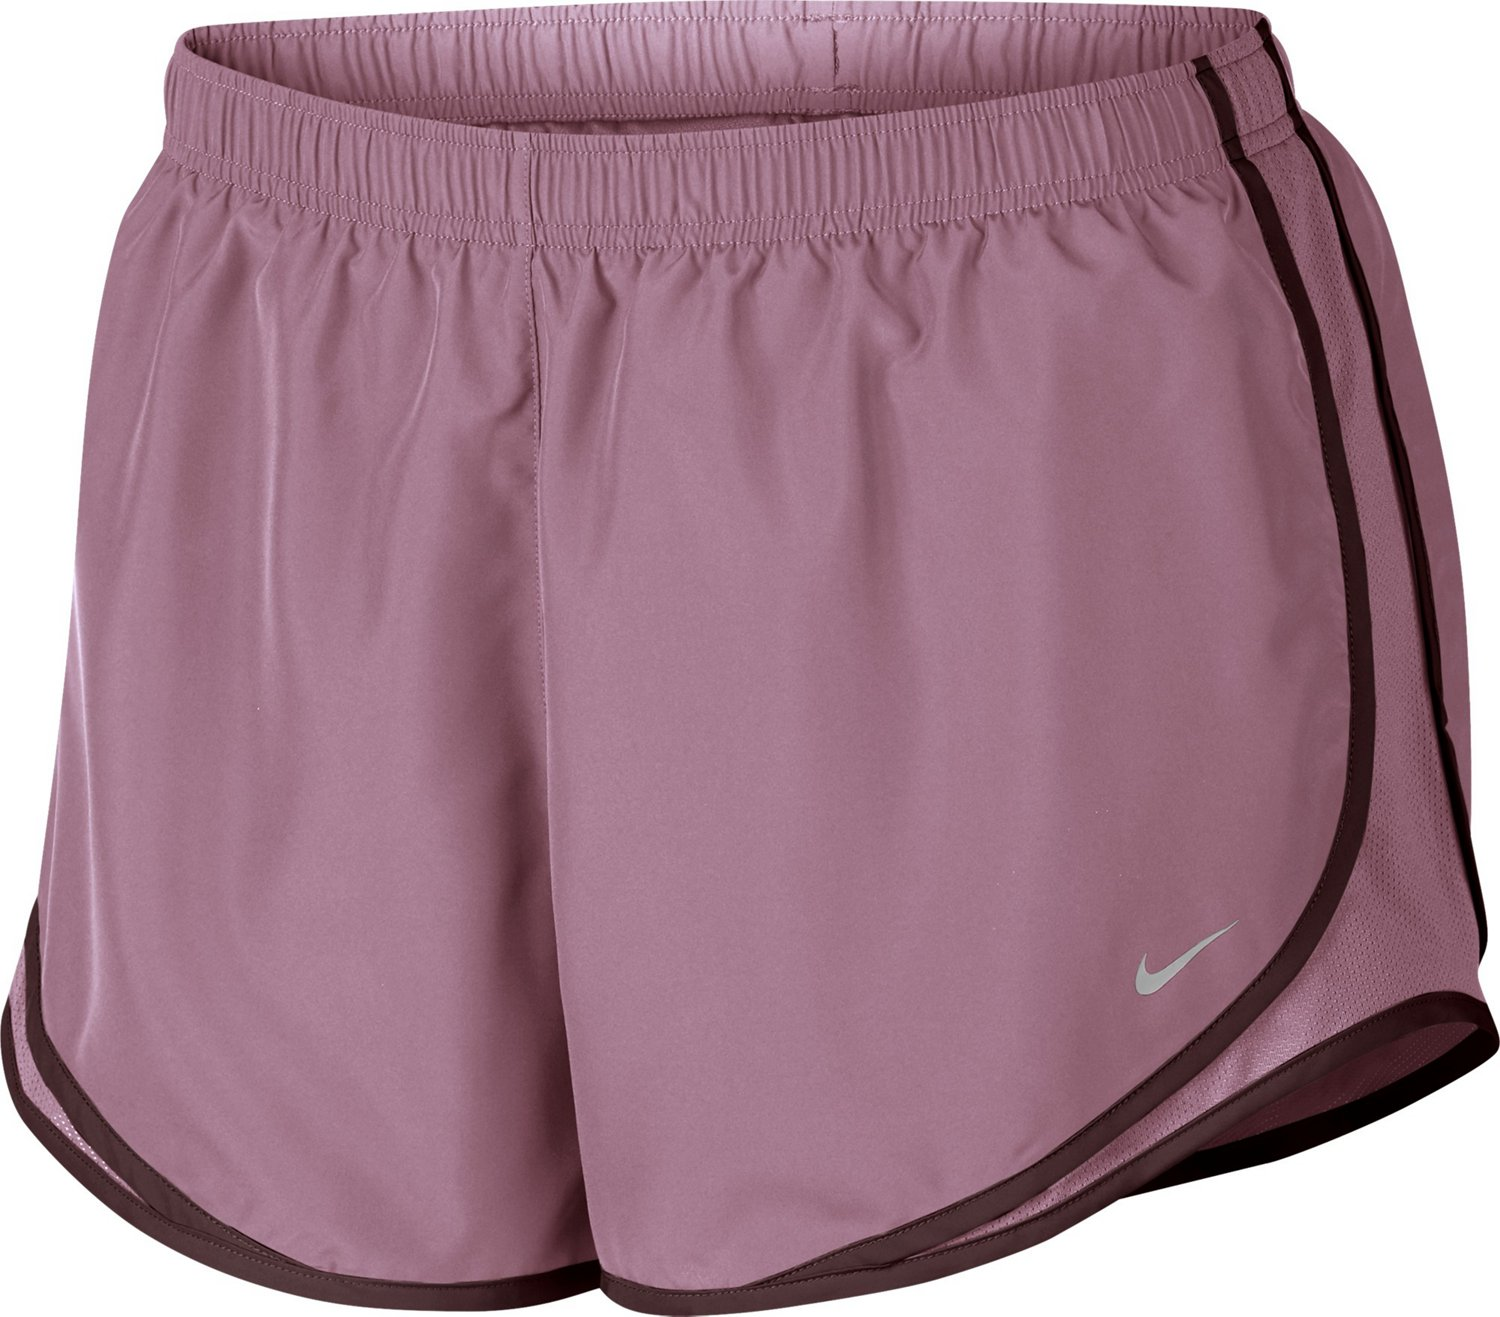 01a15168cc4c5 Display product reviews for Nike Women s Dry Tempo Plus Size Shorts